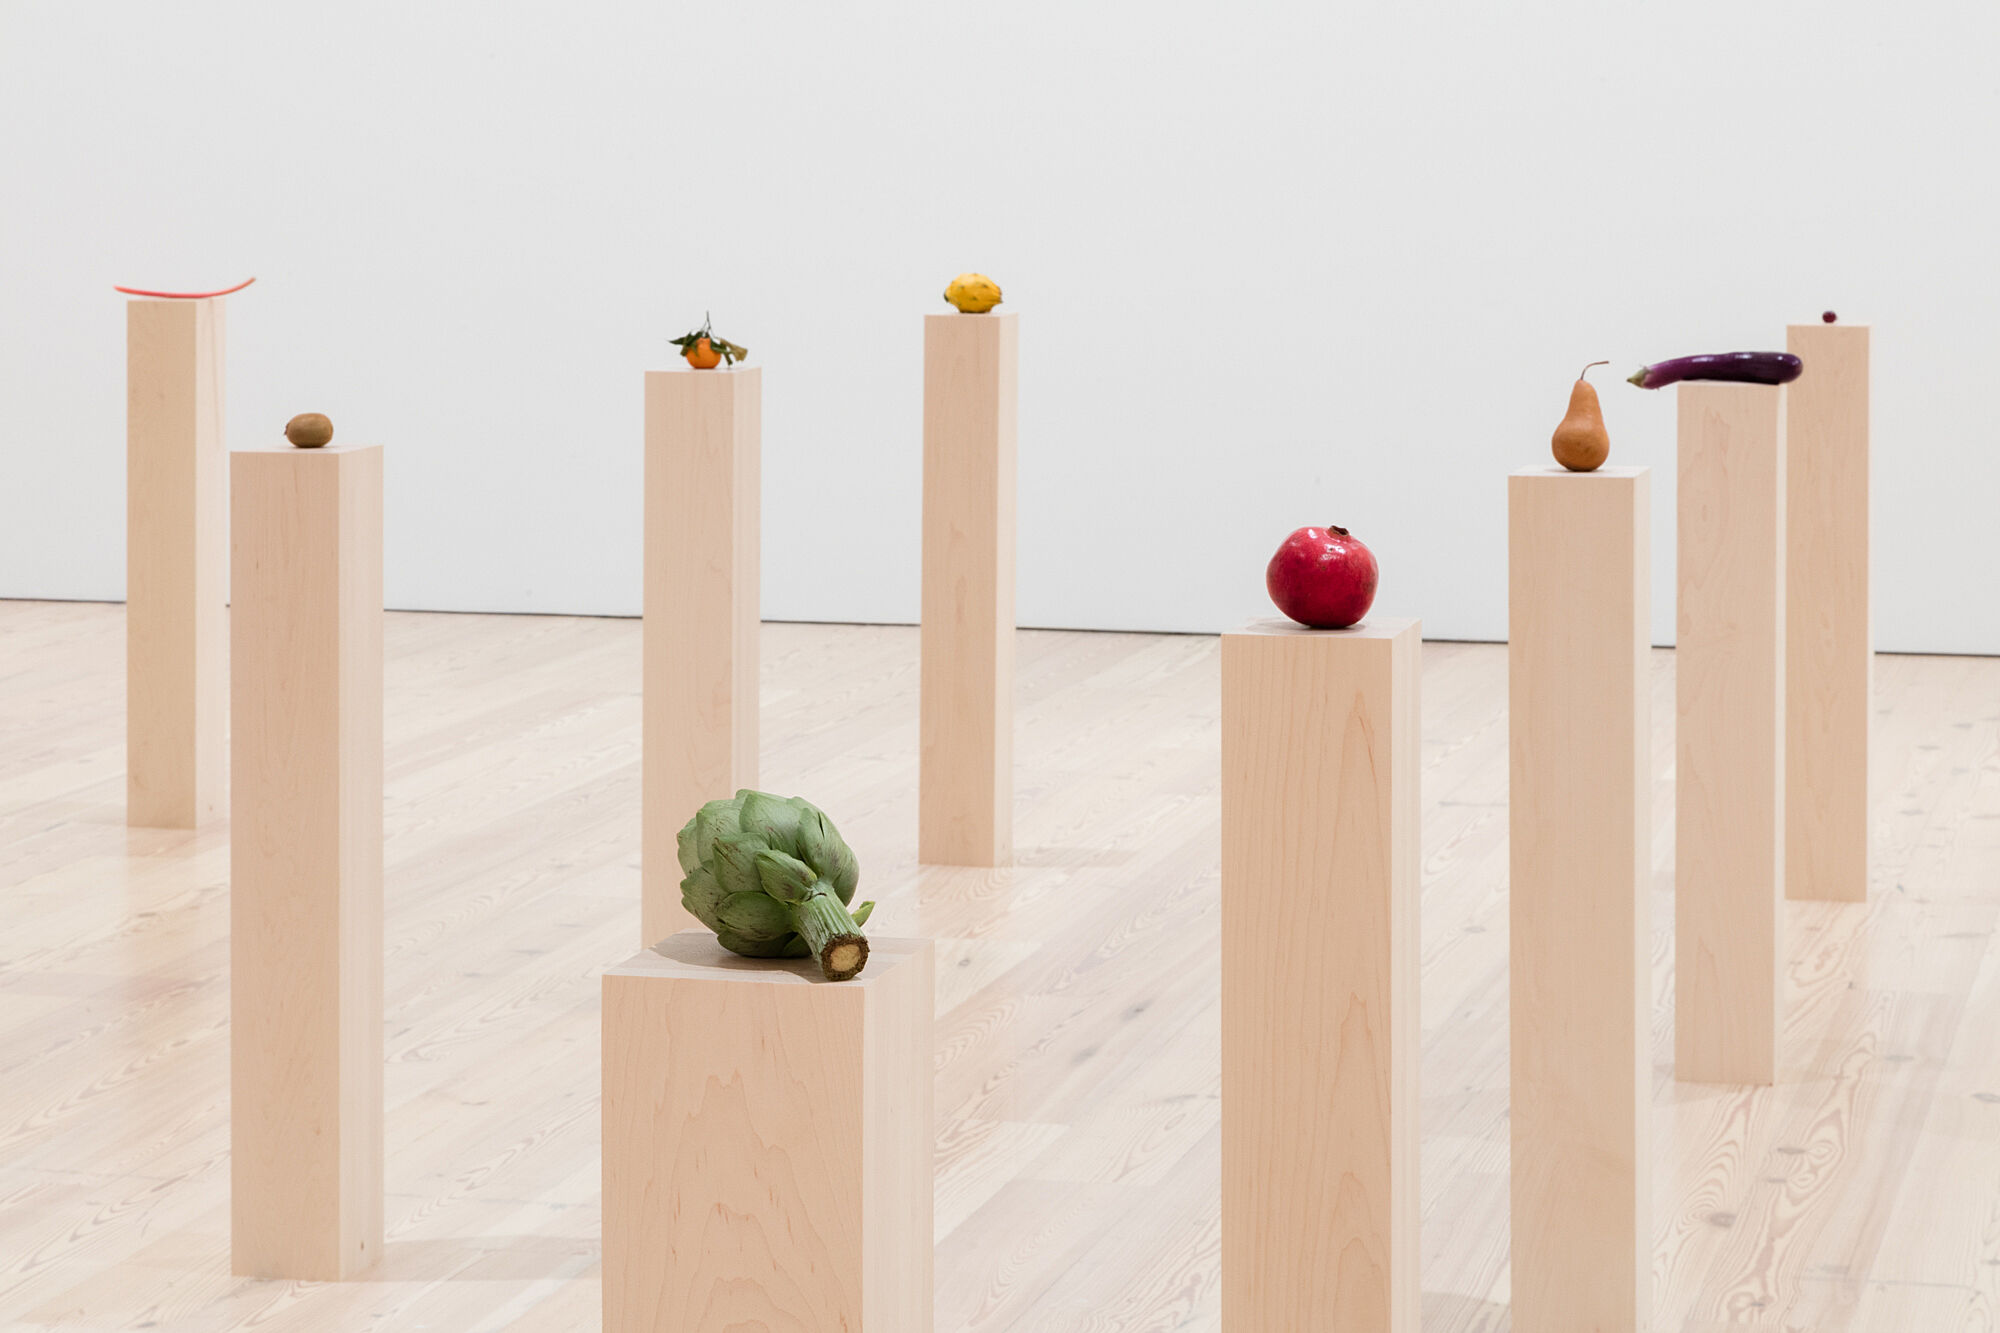 A photo of assorted vegetables and fruits on plinths.